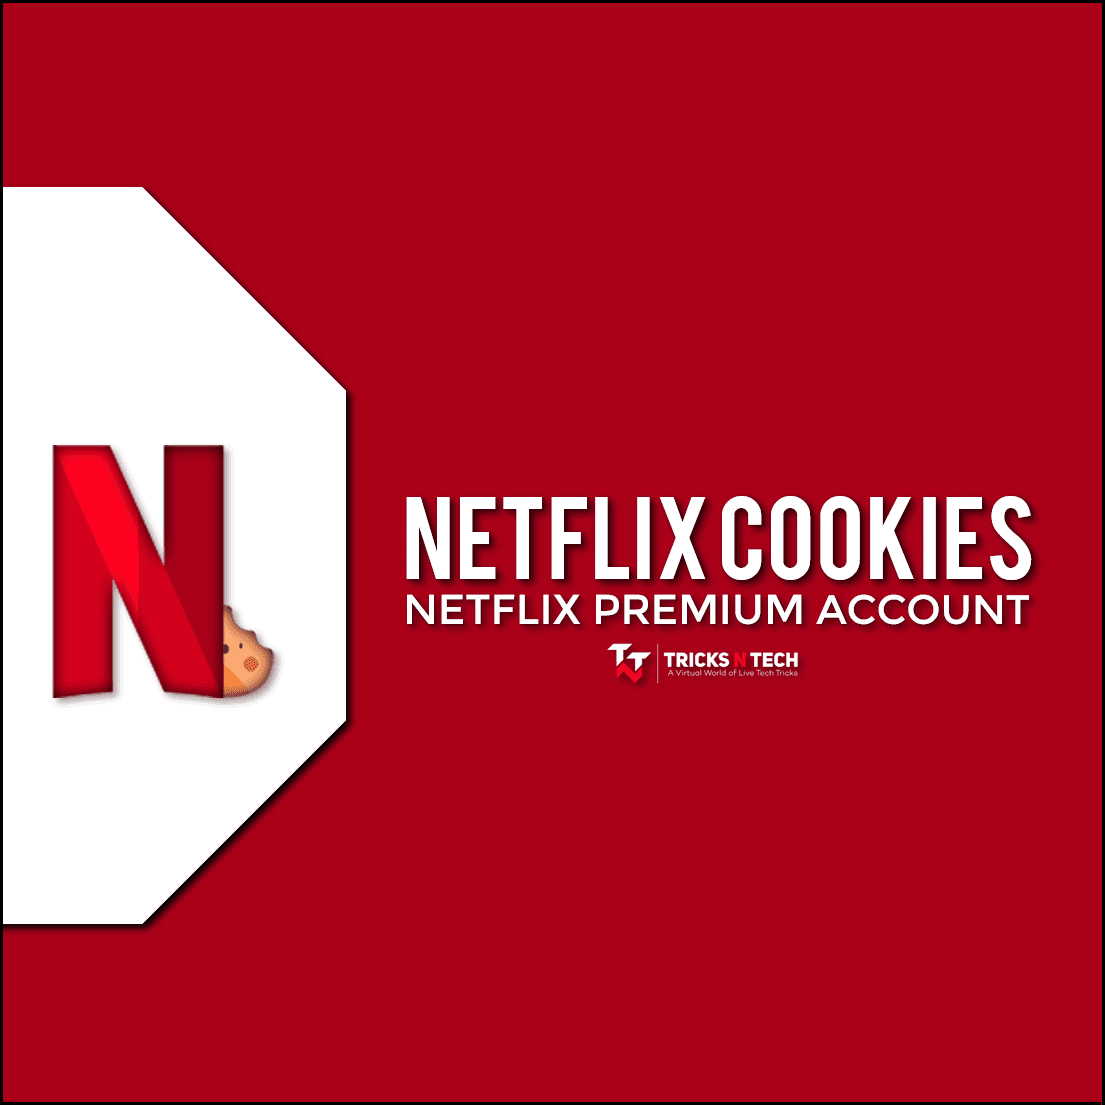 Netflix Accounts 2019 – Daily Motivational Quotes